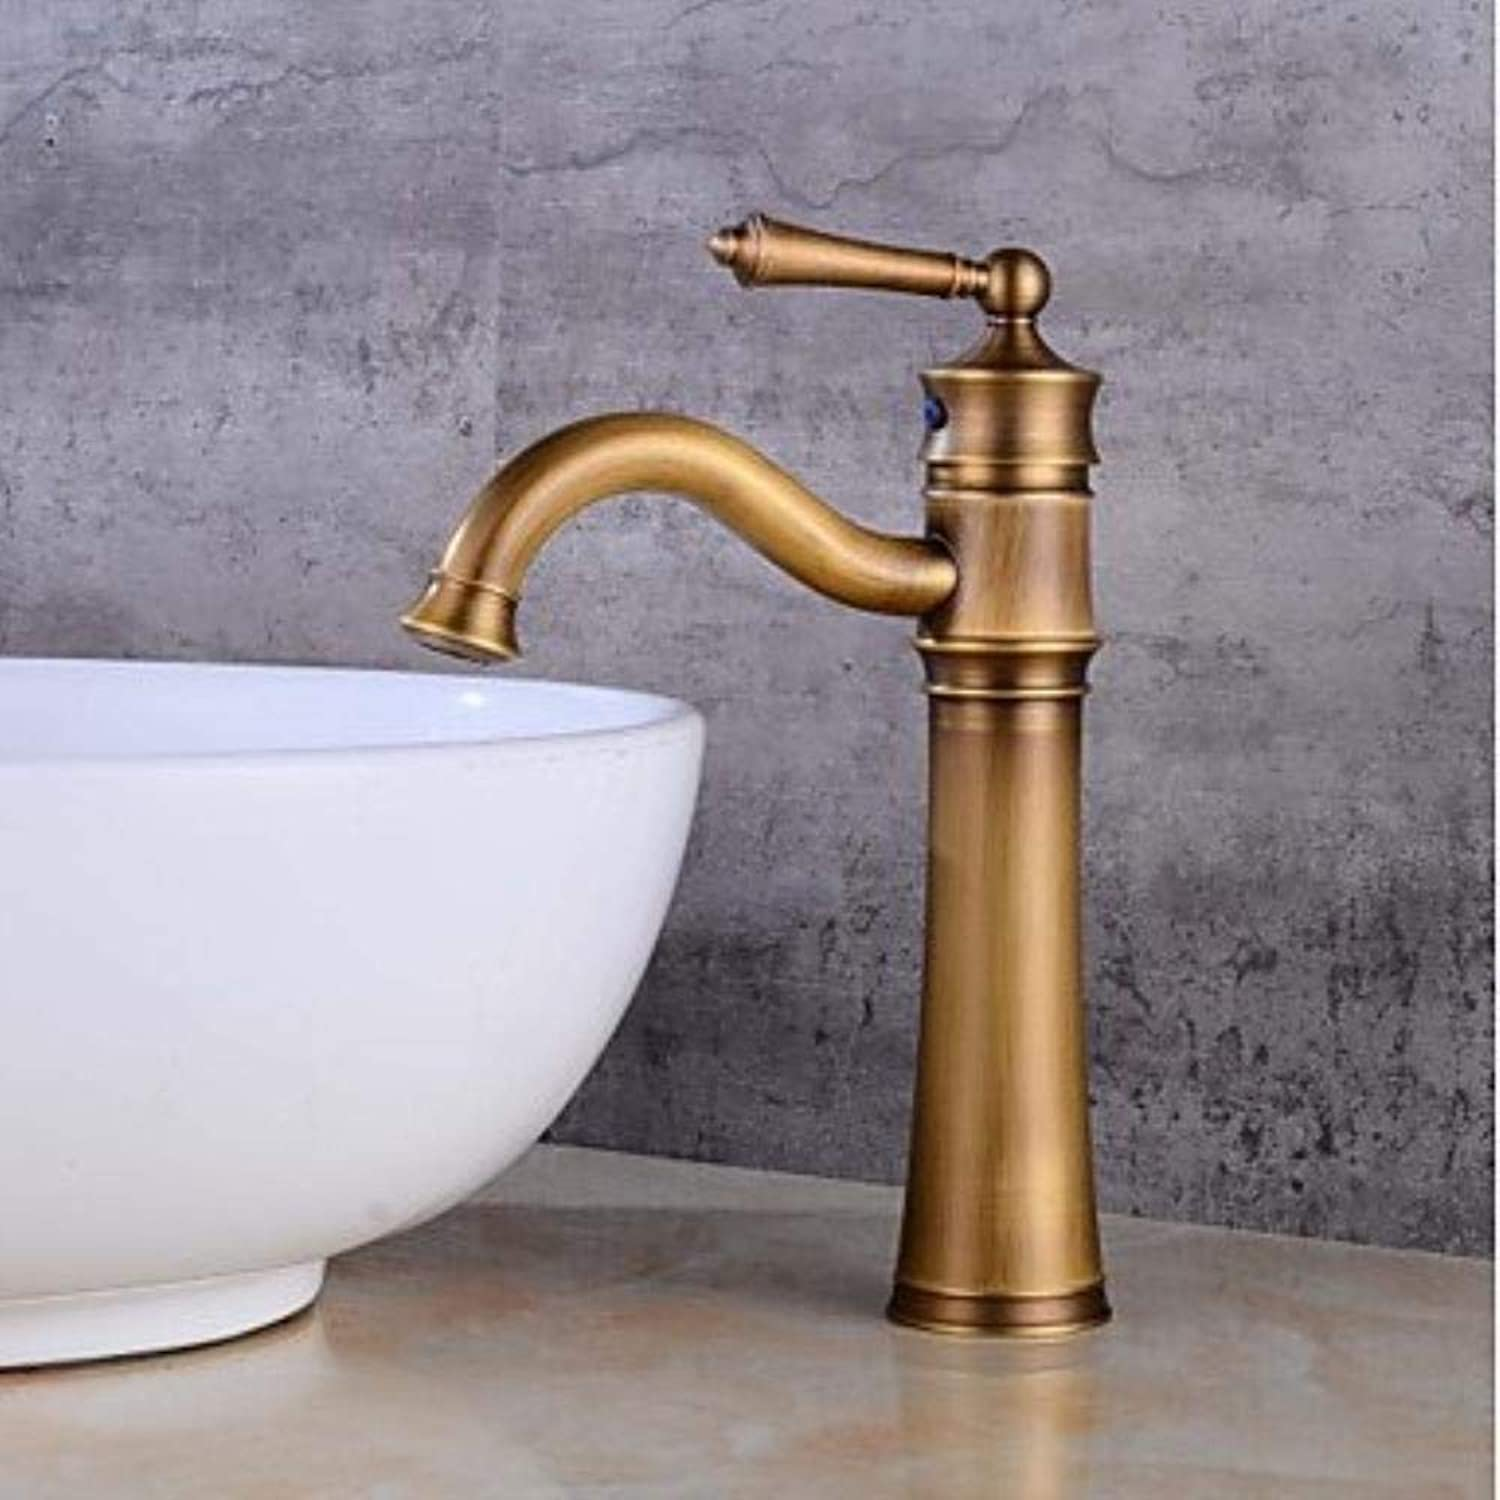 XSRKHome?Centerset Clawfoot withCeramic Valve Single Handle One Hole forAntique Copper, Bathroom Sink Faucet